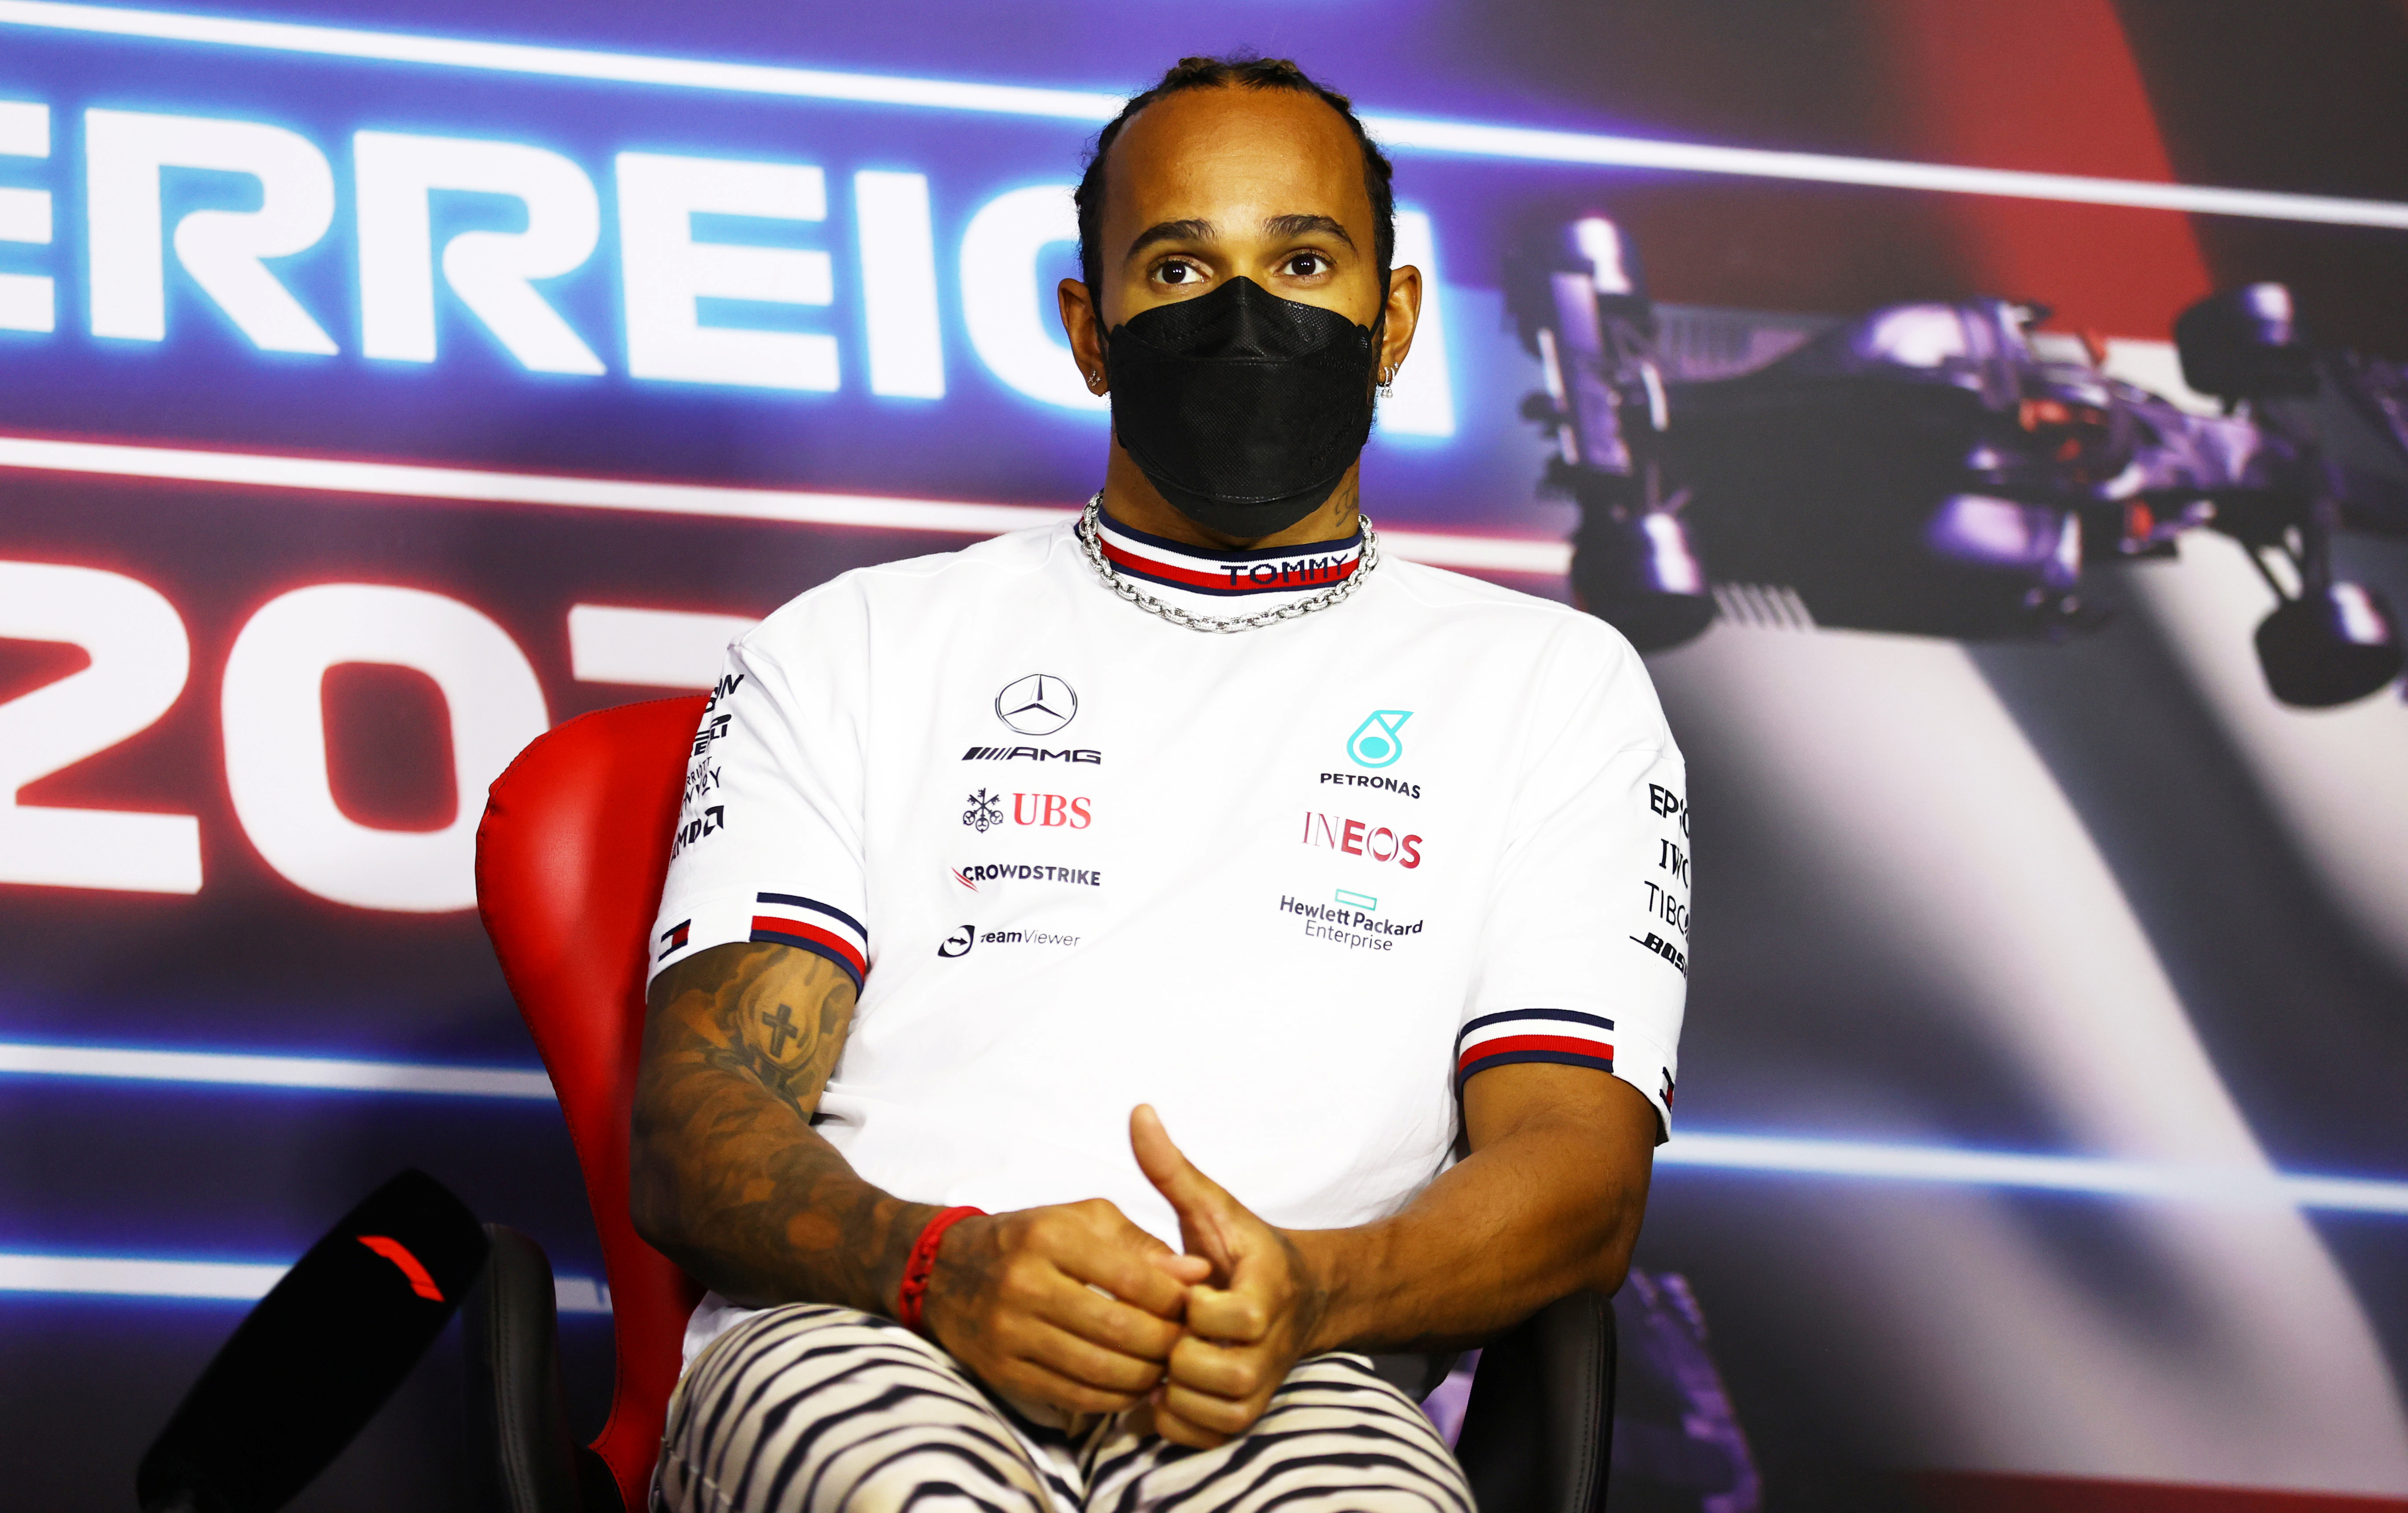 Formula One F1 - Austrian Grand Prix - Red Bull Ring, Spielberg, Styria, Austria - July 1, 2021 Mercedes' Lewis Hamilton during the press conference FIA/Handout via REUTERS